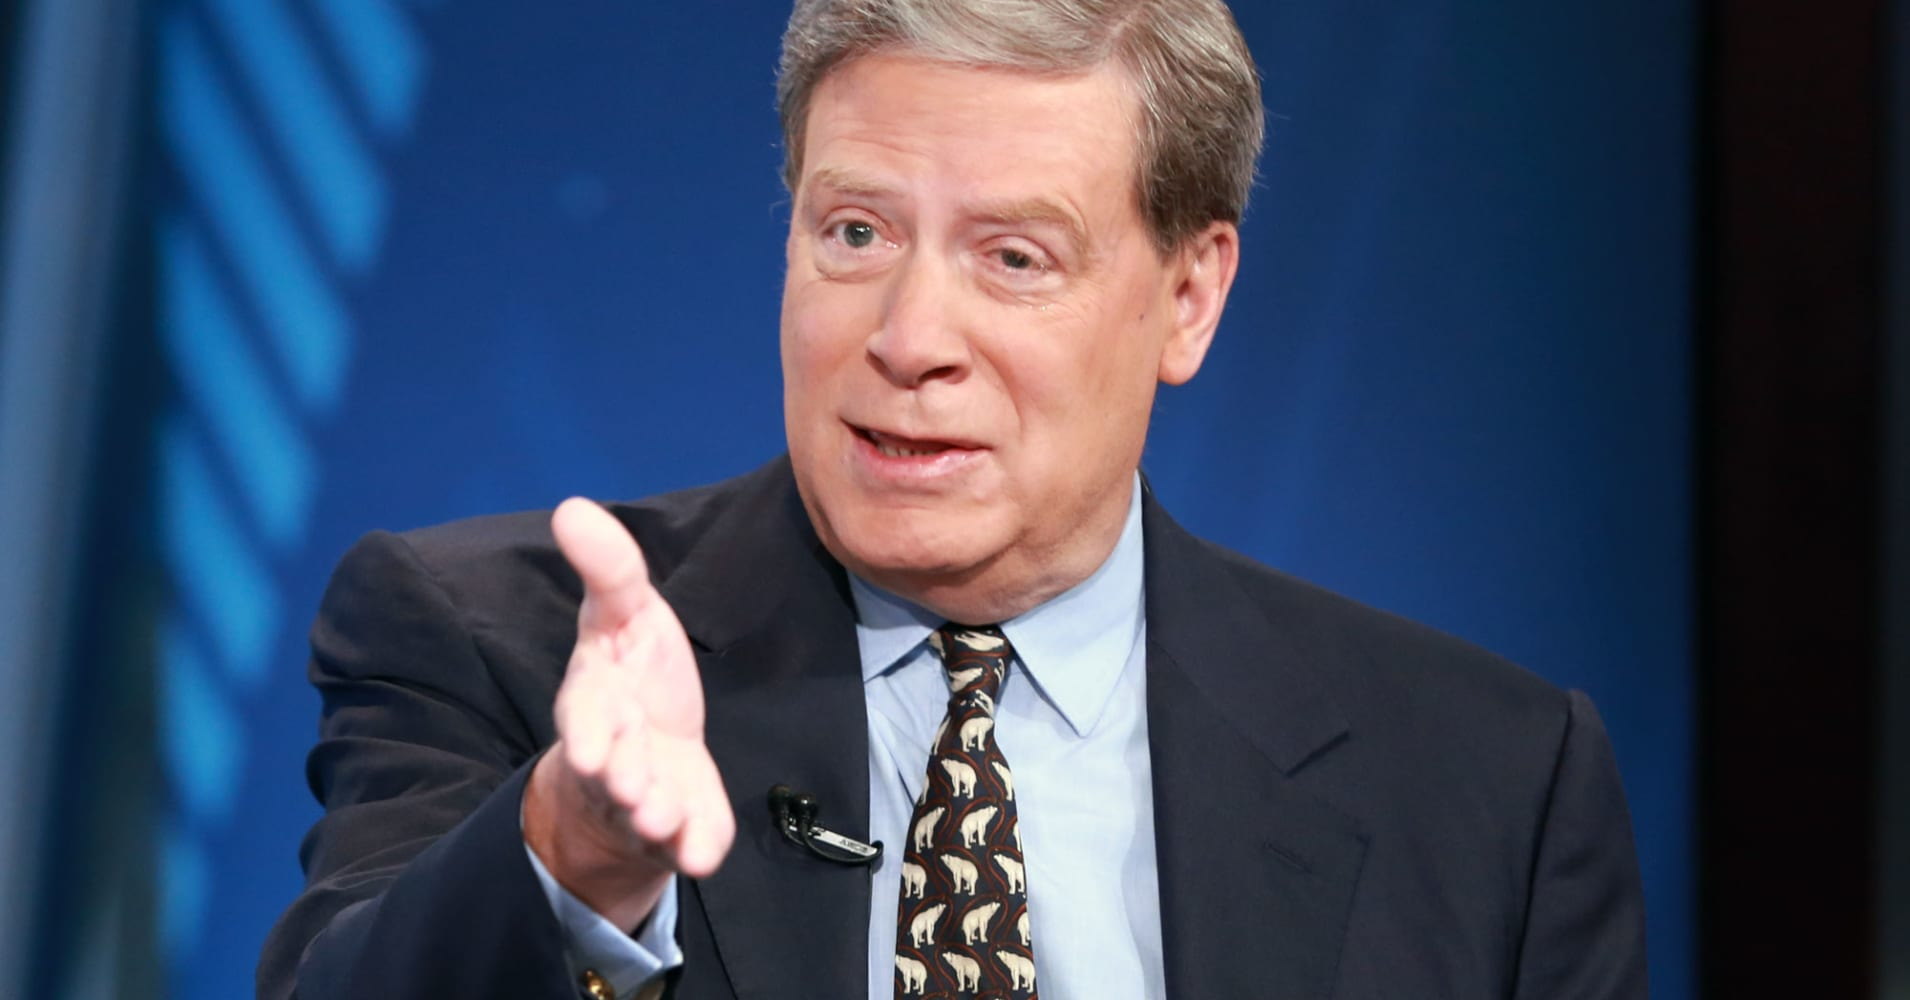 Stanley Druckenmiller calls hedge fund loophole in tax reform 'outrageous'